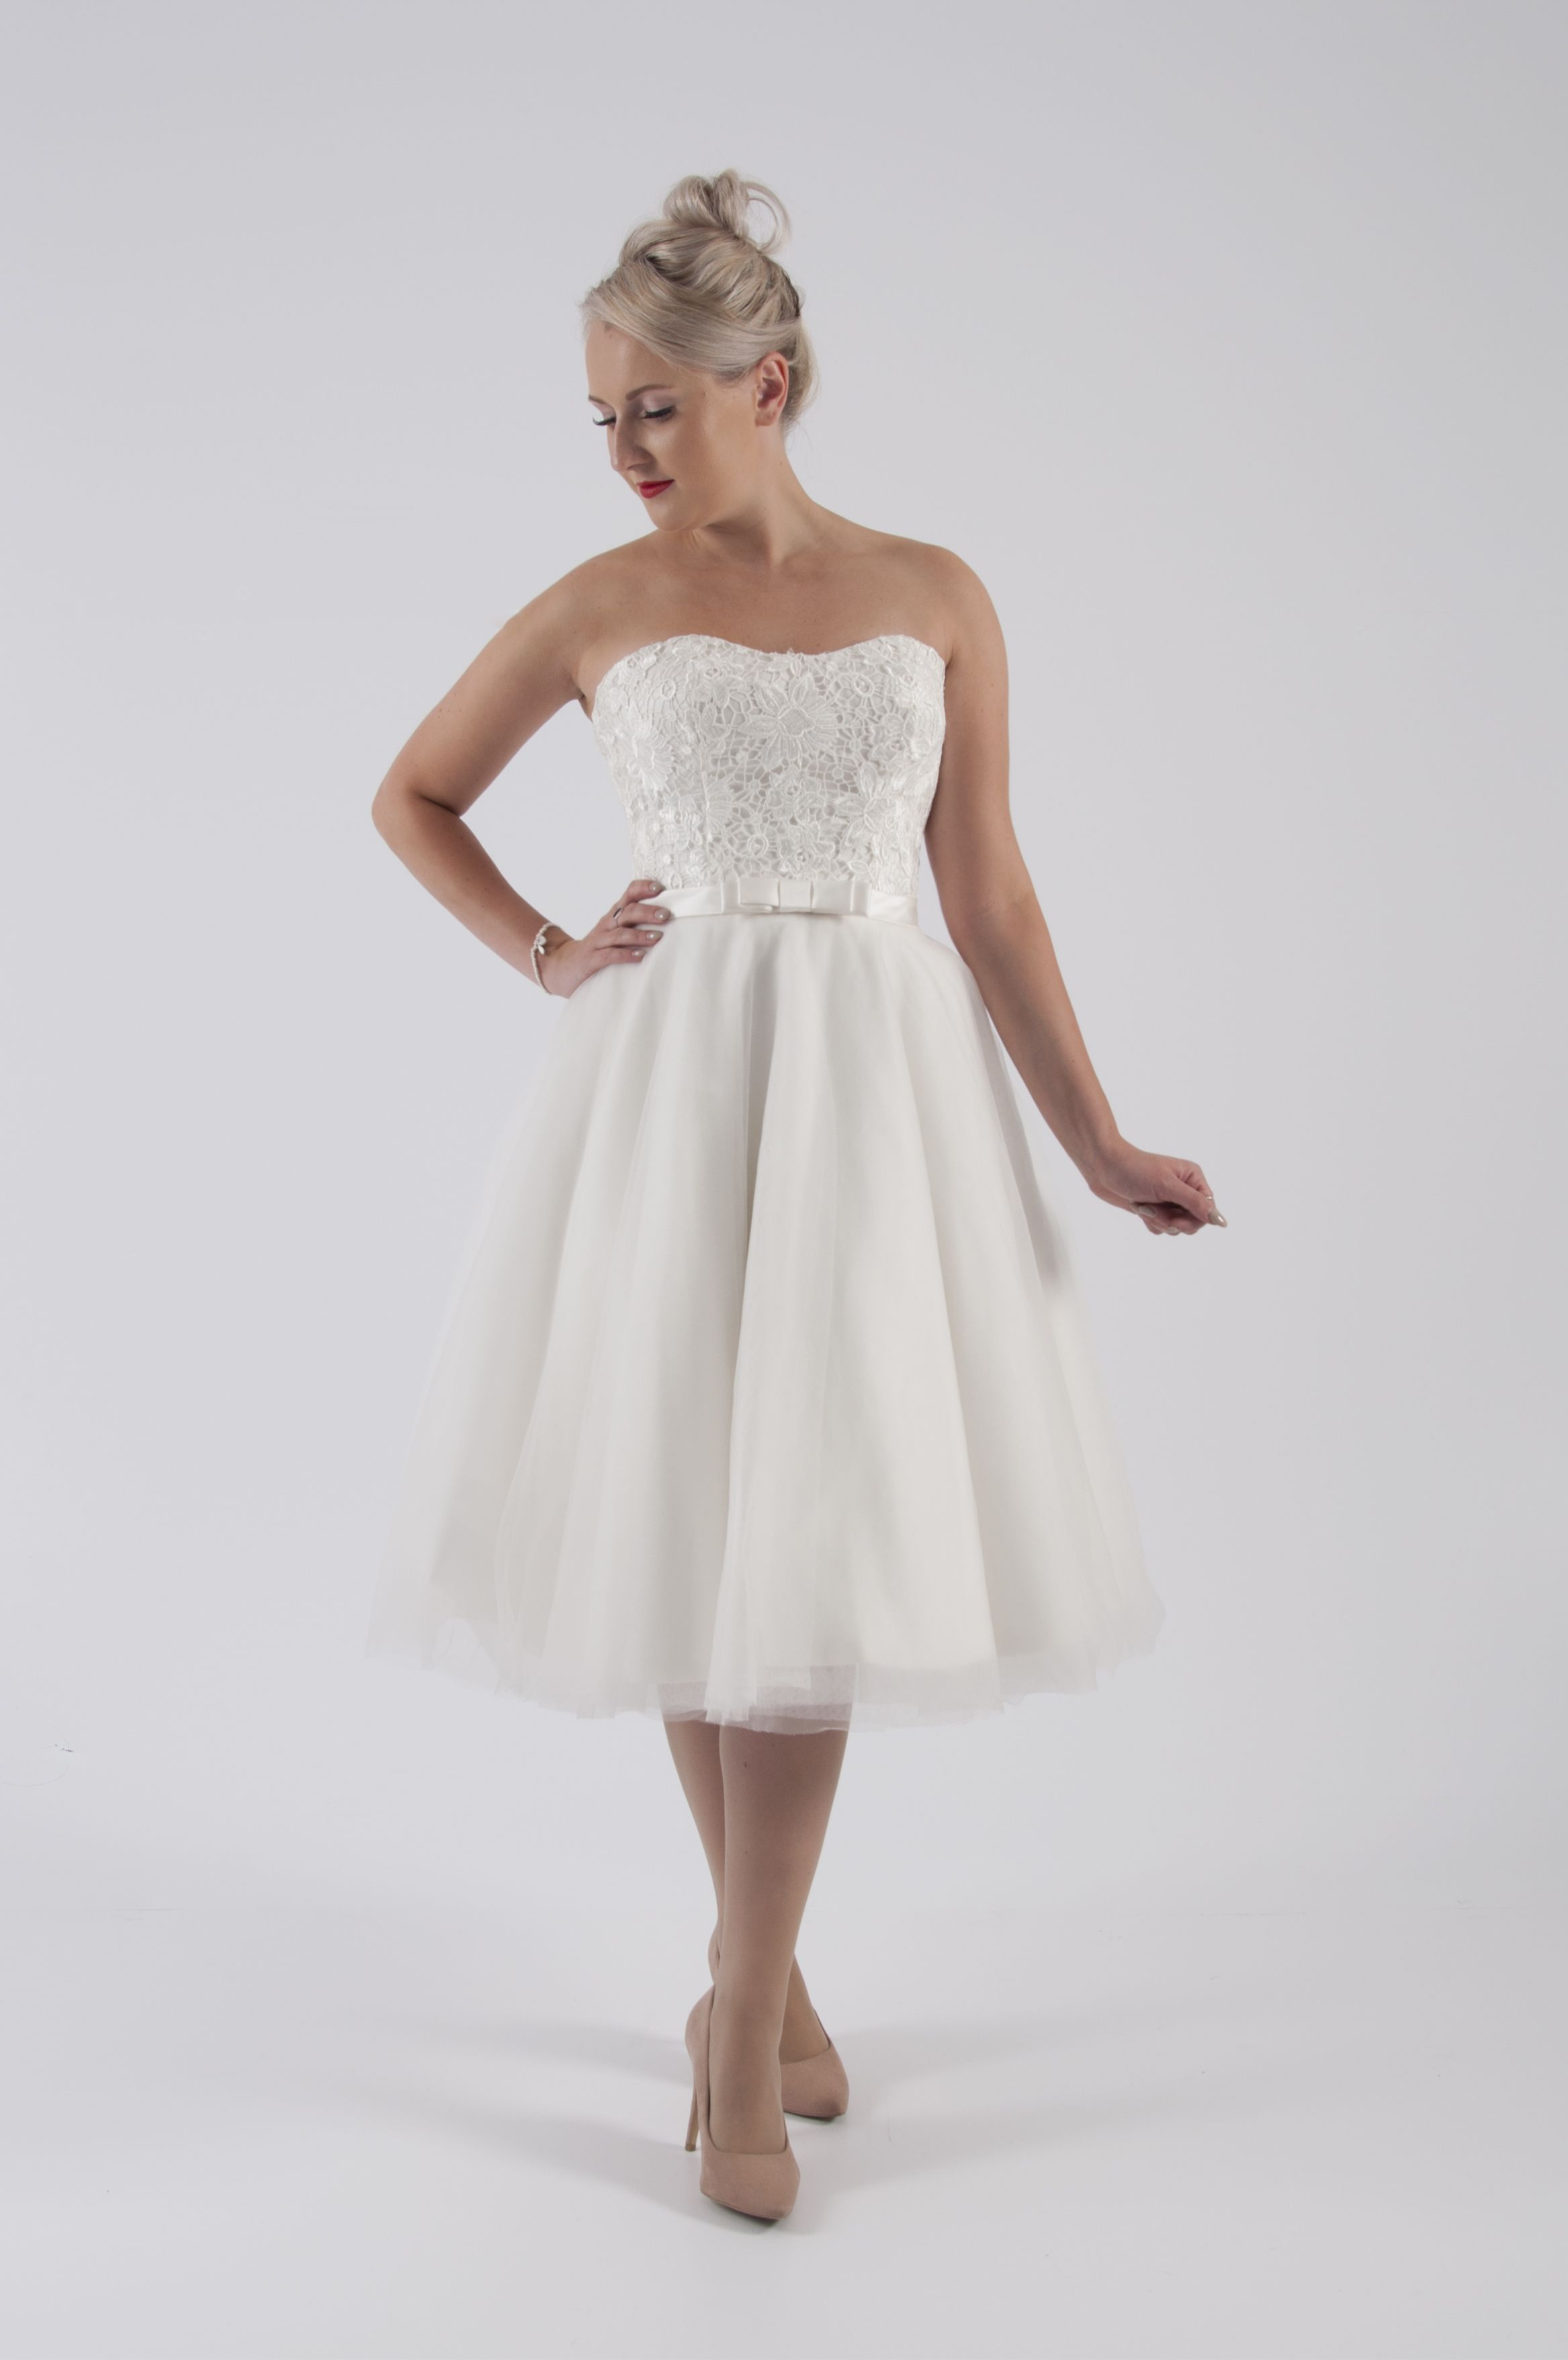 House of mooshki original strapless guipure lace ivory short wedding